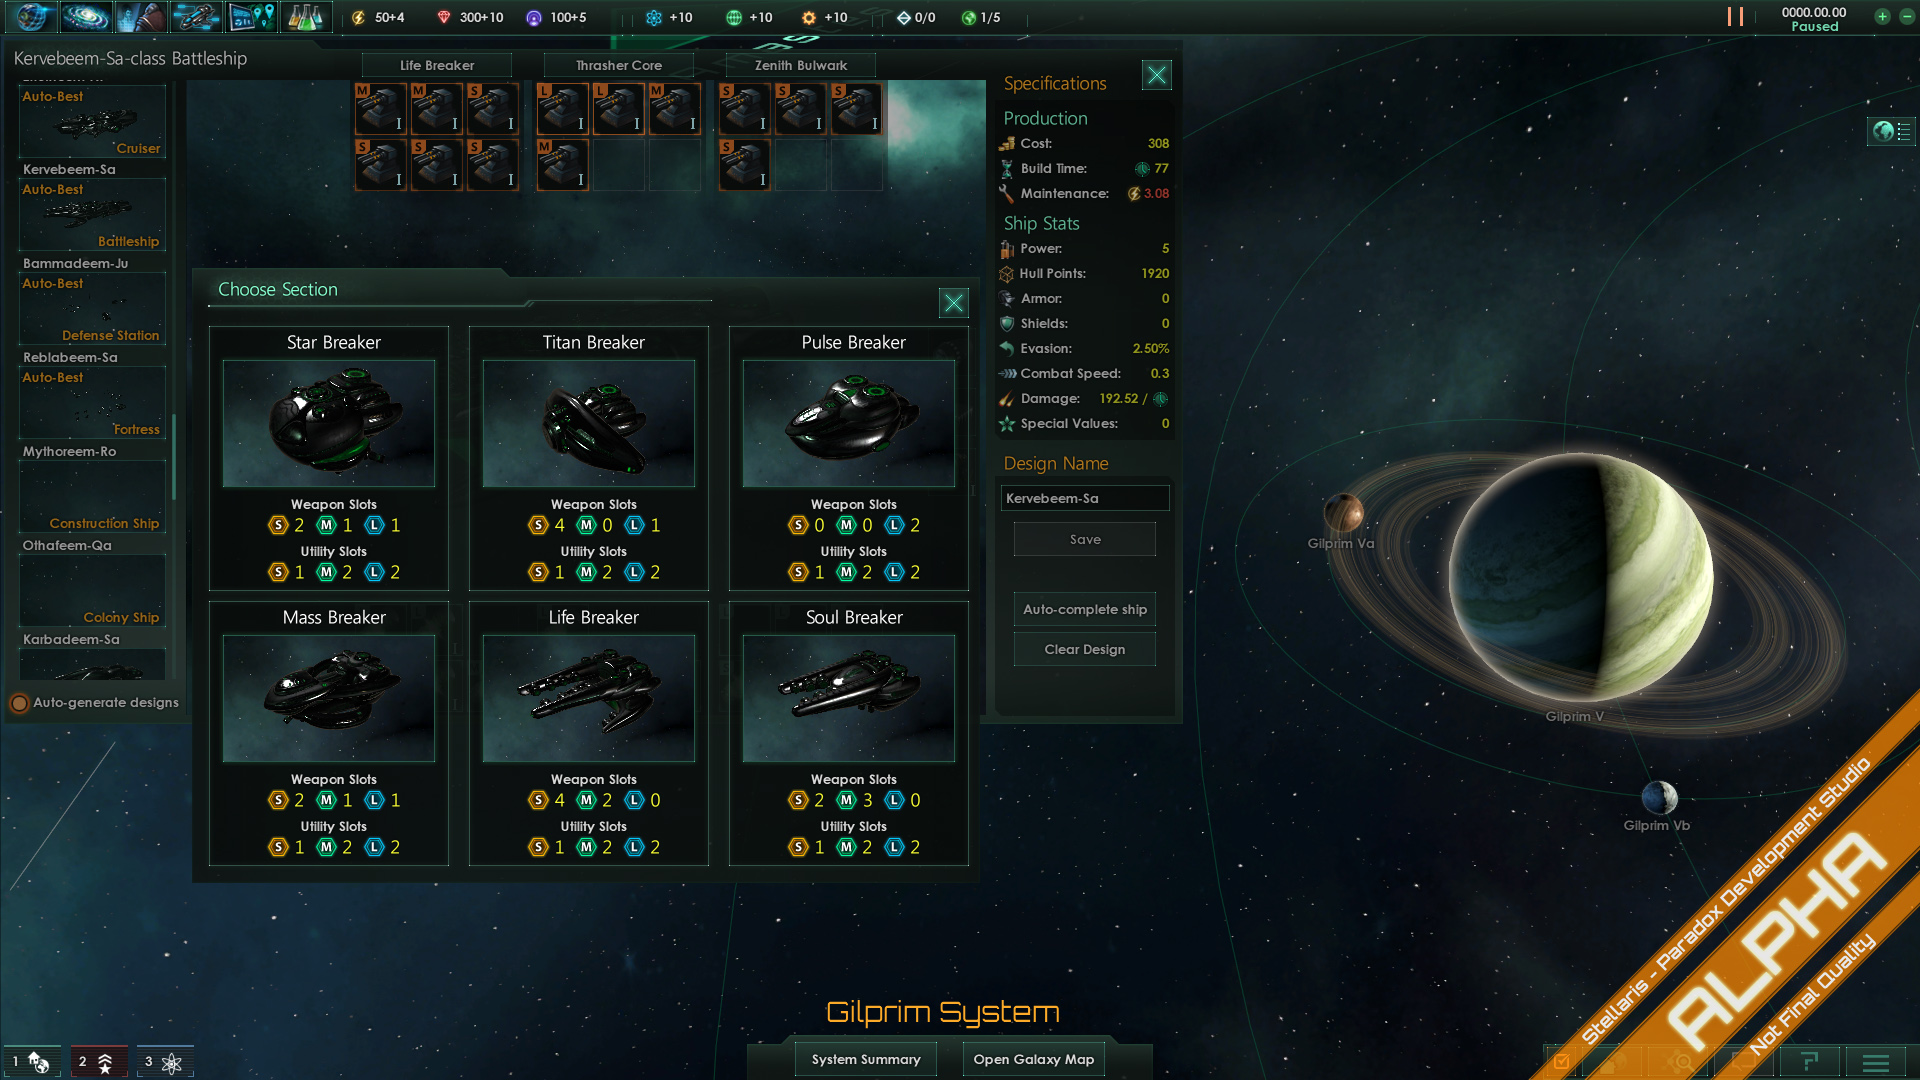 stellaris_dev_diary_16_01_20160118_choose_section.jpg